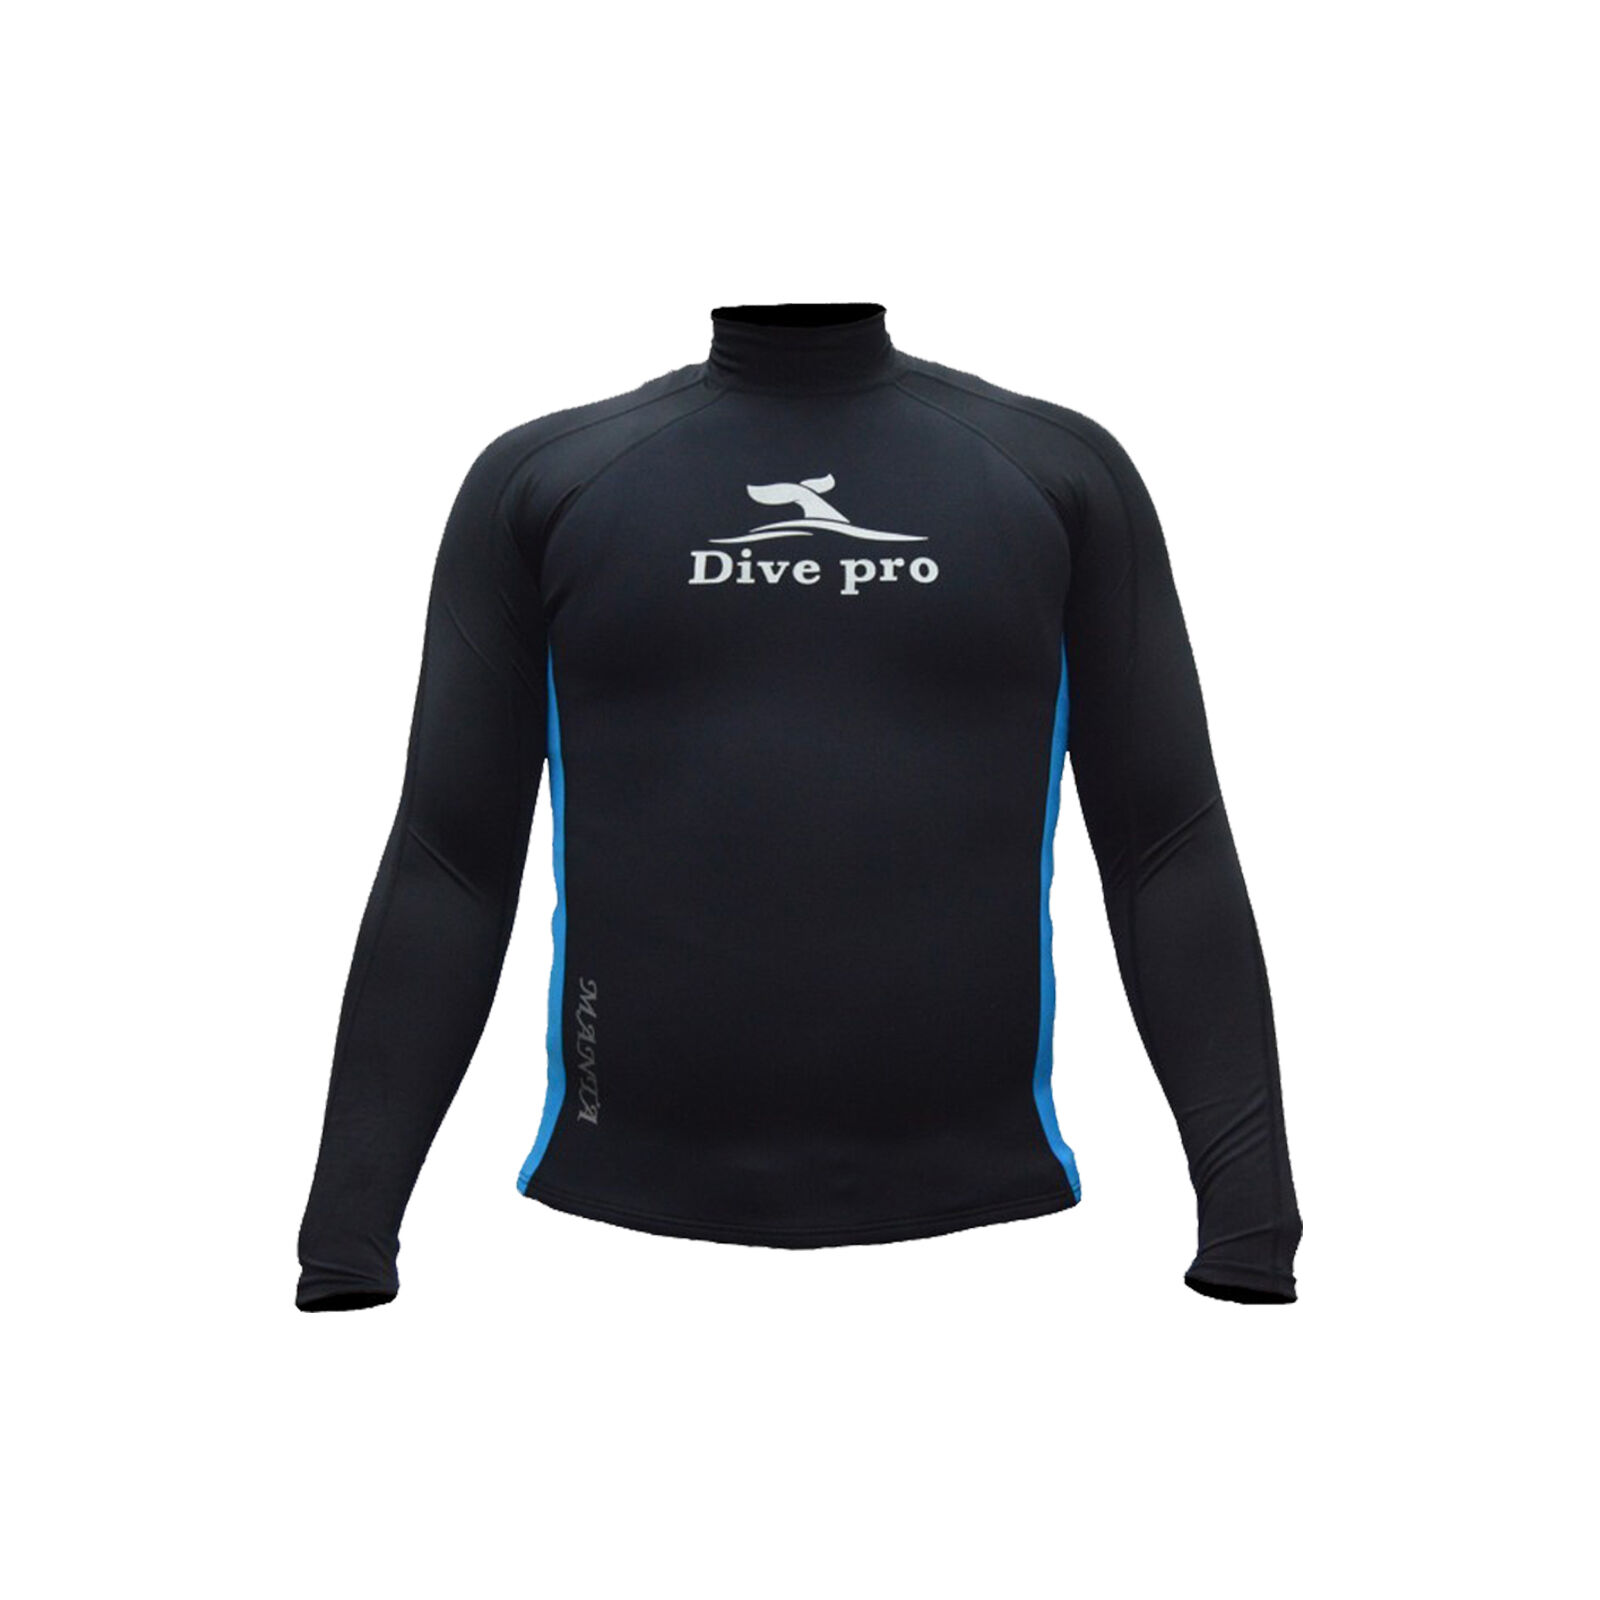 Divepro Manta 2,5 Long Sleeve  - Neoprene Men's Shirt  more discount